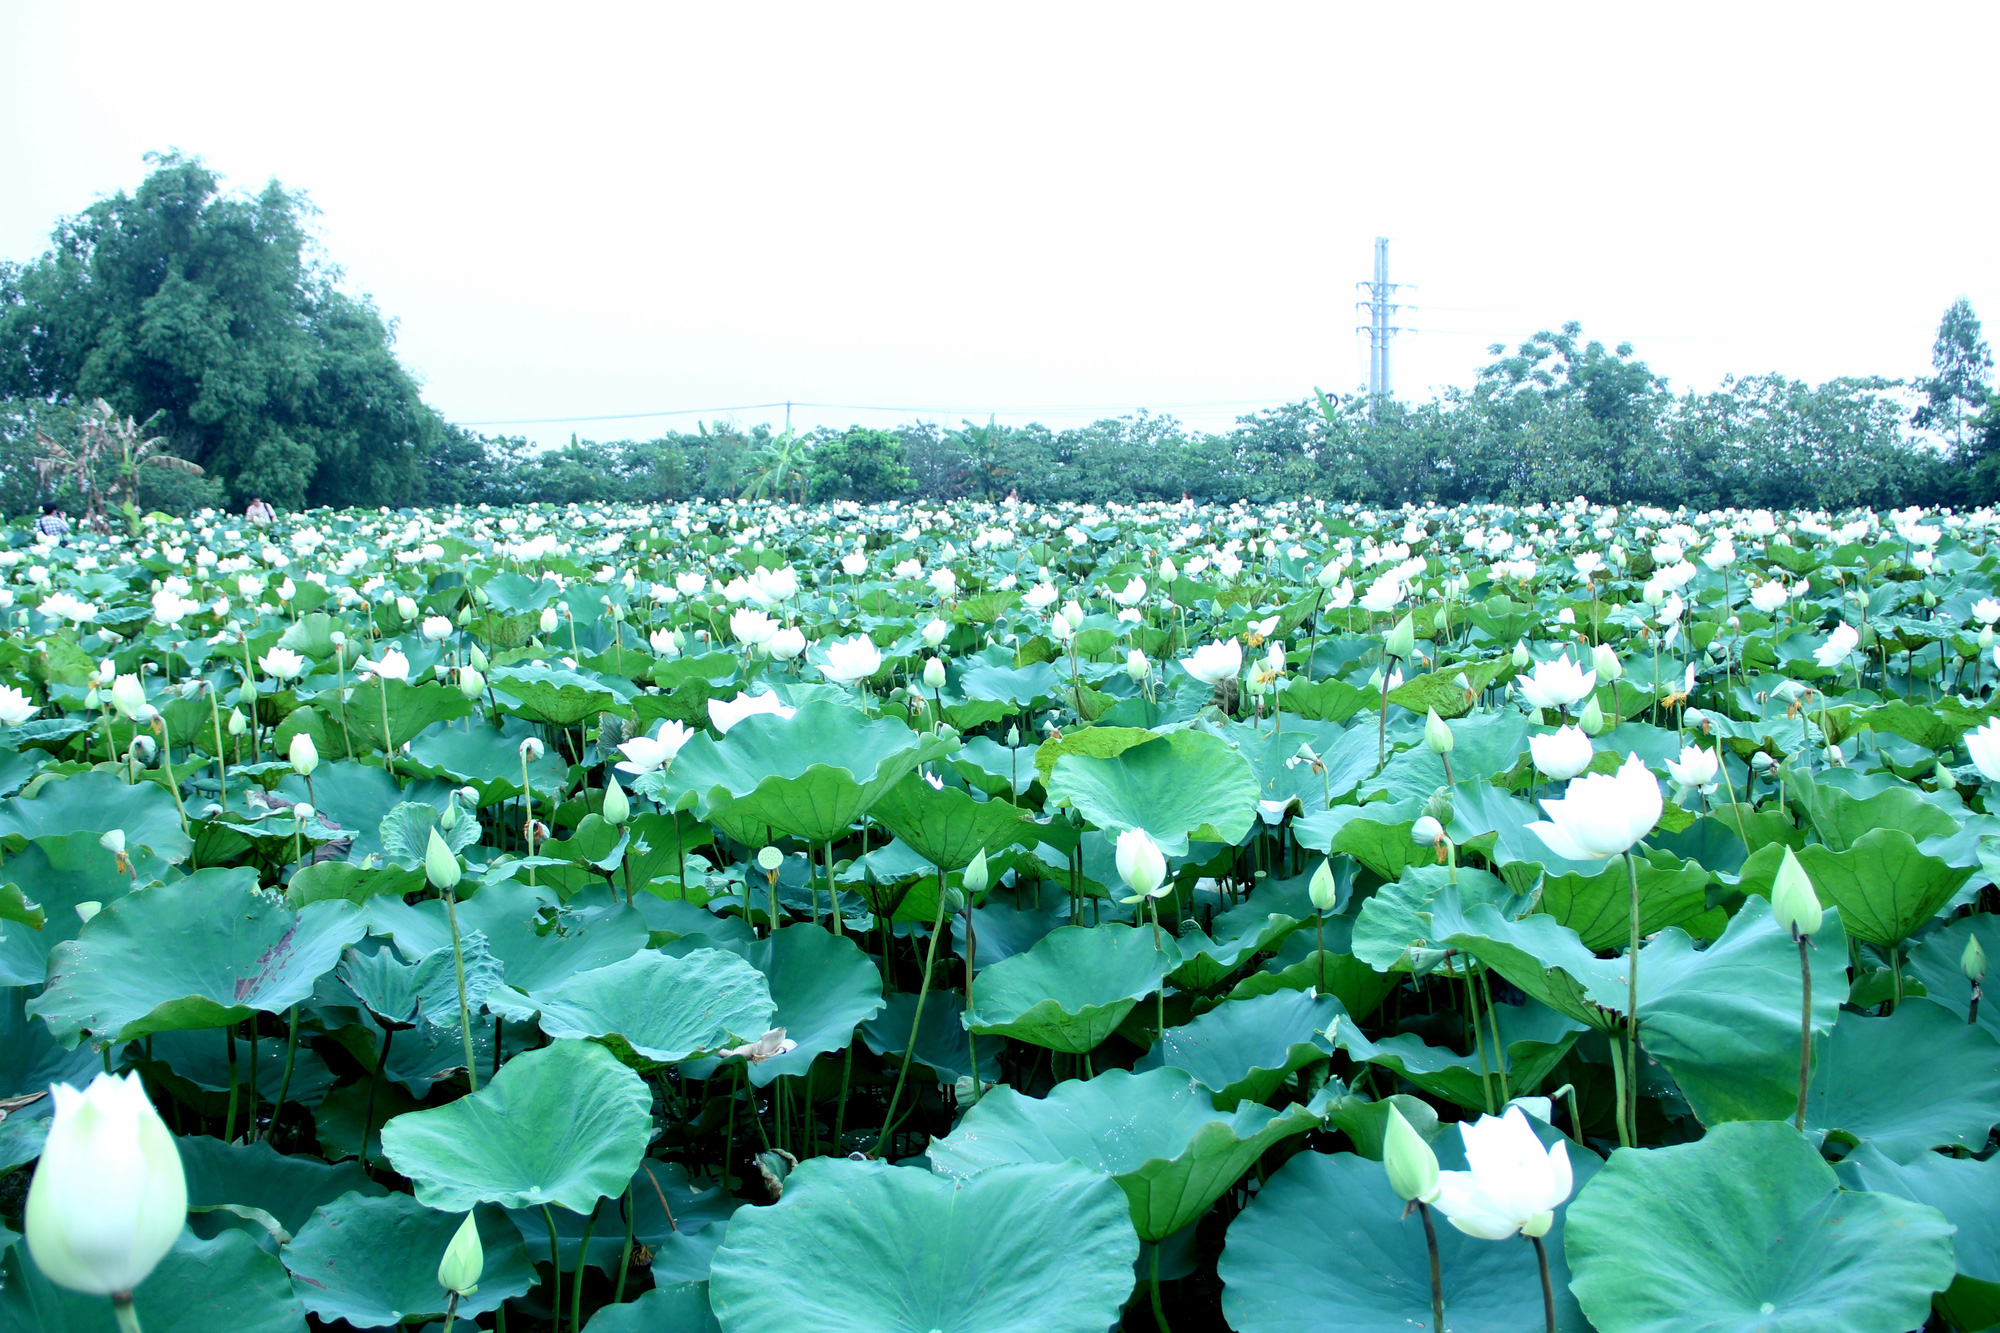 The white lotus pond of Ta Thi Bich's family at Tam Hung Commune, Thanh Oai District, Hanoi, Vietnam is seen in the photo taken in May 2020. Photo: Duong Lieu / Tuoi Tre